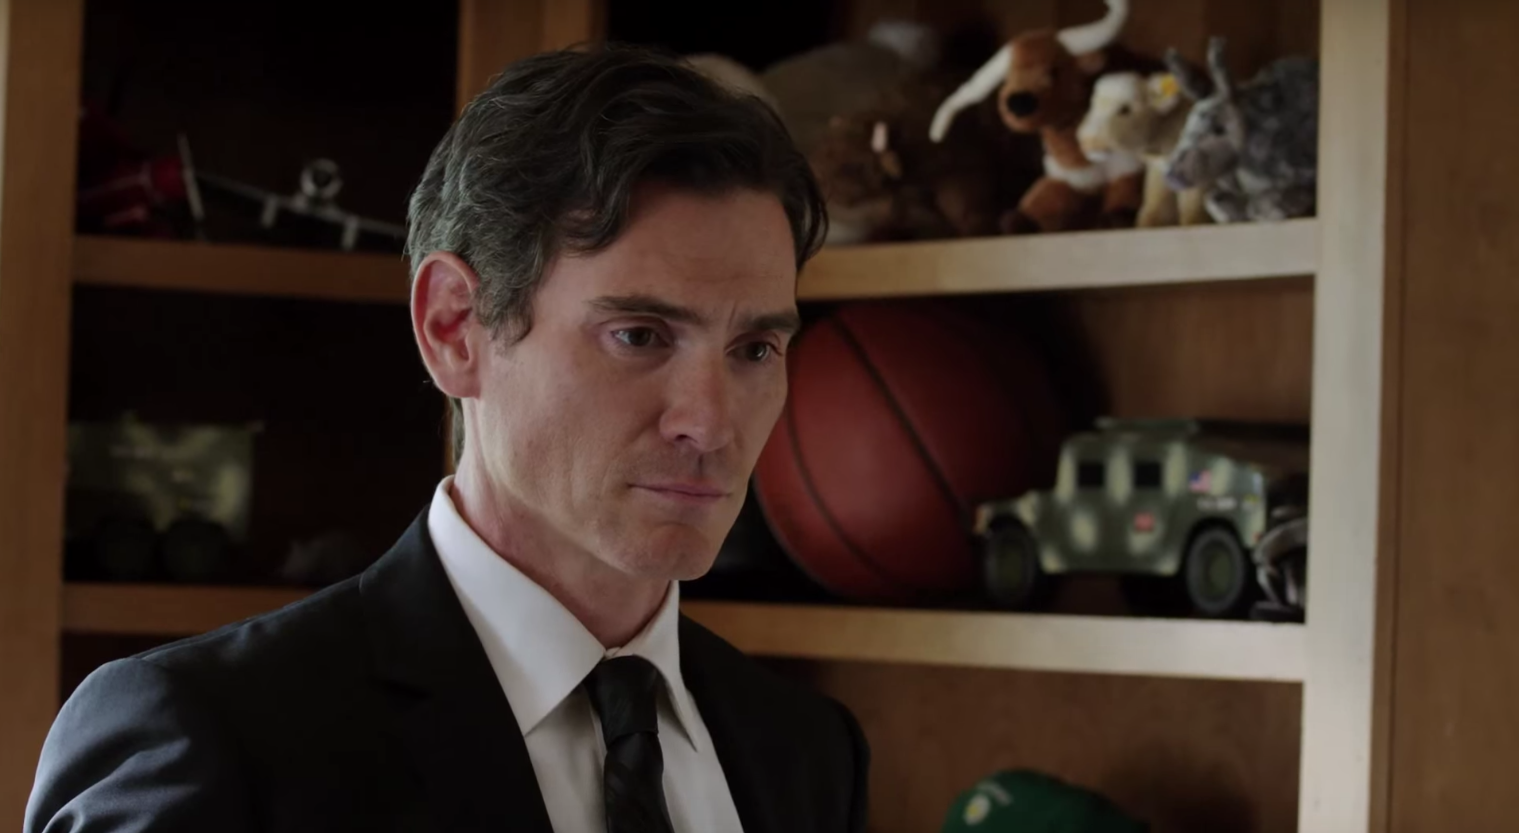 Billy Crudup could play Barry Allen's father in standalone Flash film